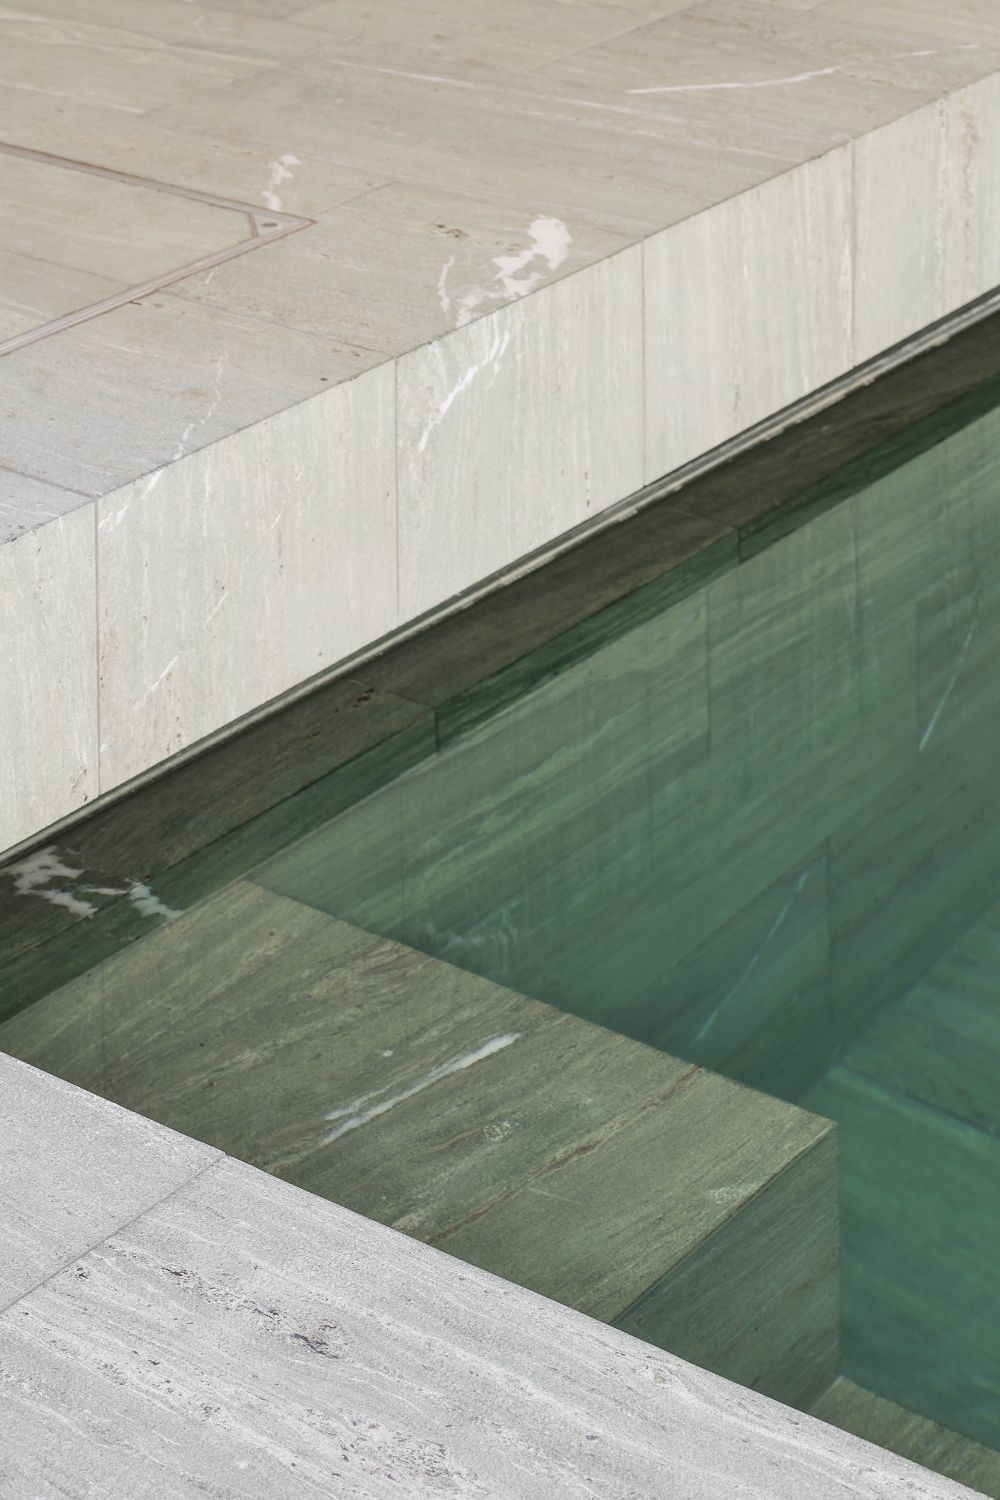 Rietveldprojects - House MP - Indoor swimminpool - Pic by Cafeïne 11